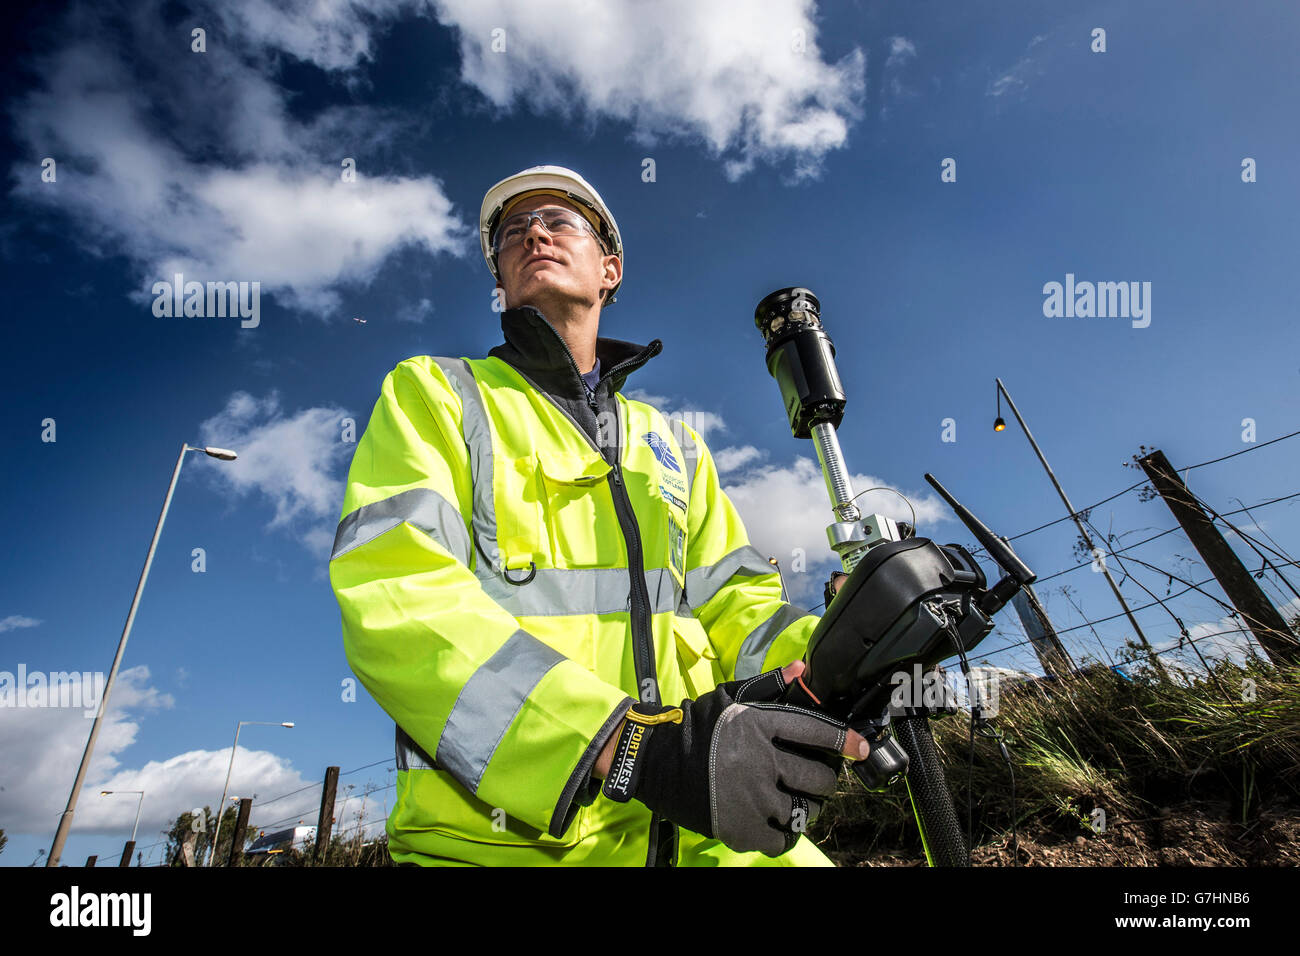 Surveyor on site using surveying equipment - Stock Image